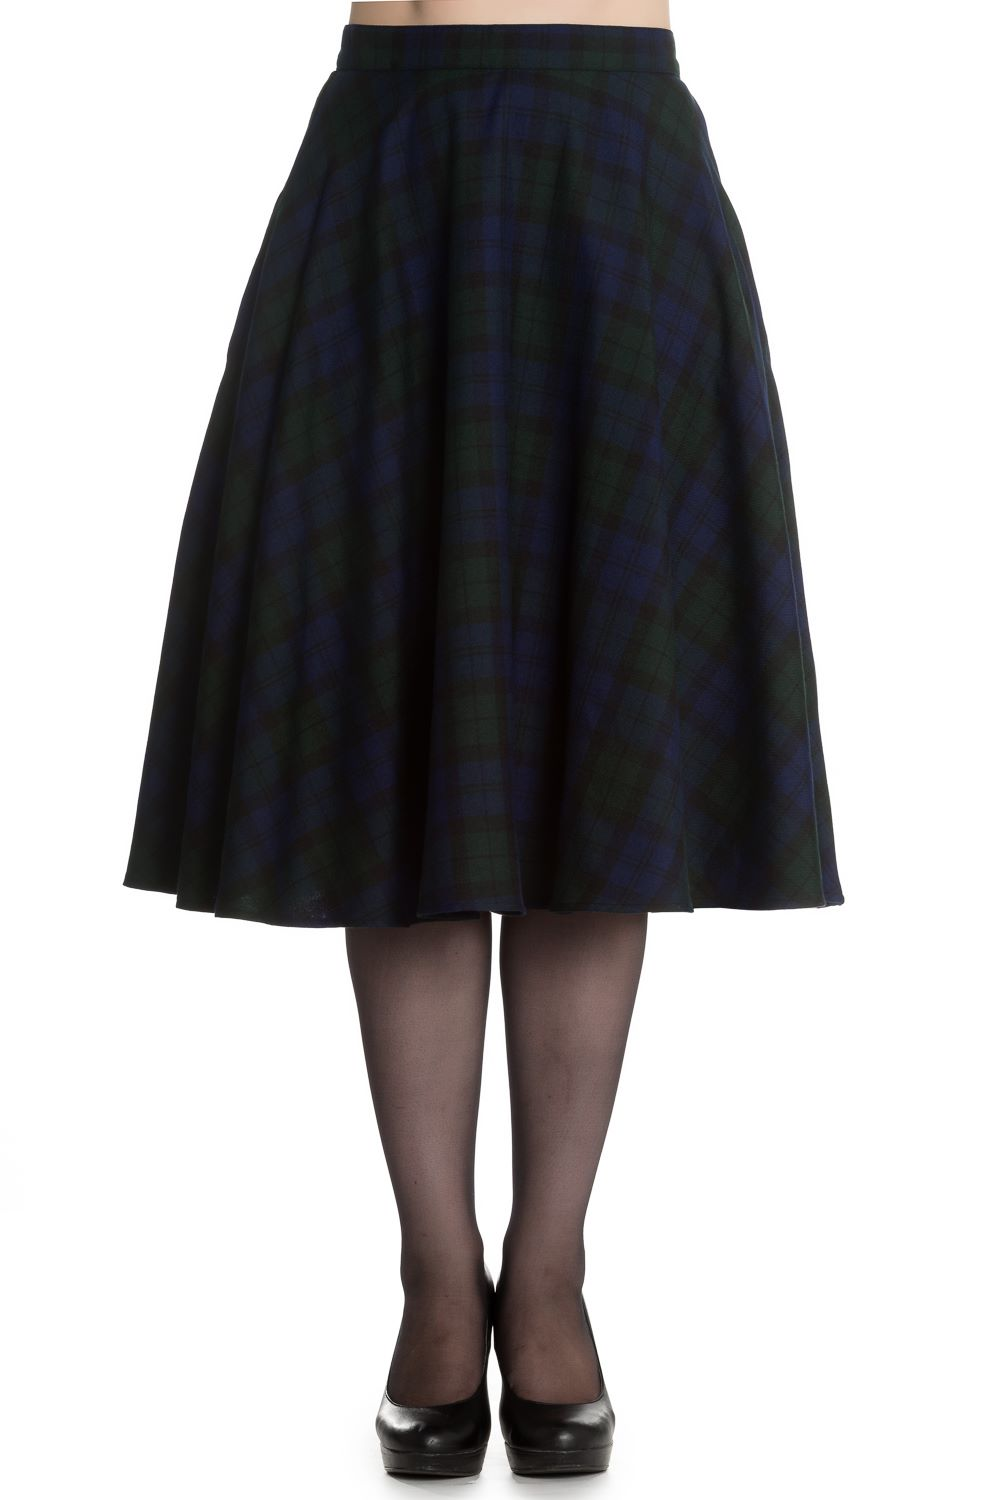 Hell Bunny Doralee 50's Skirt in Blue & Green Stewart Tartan